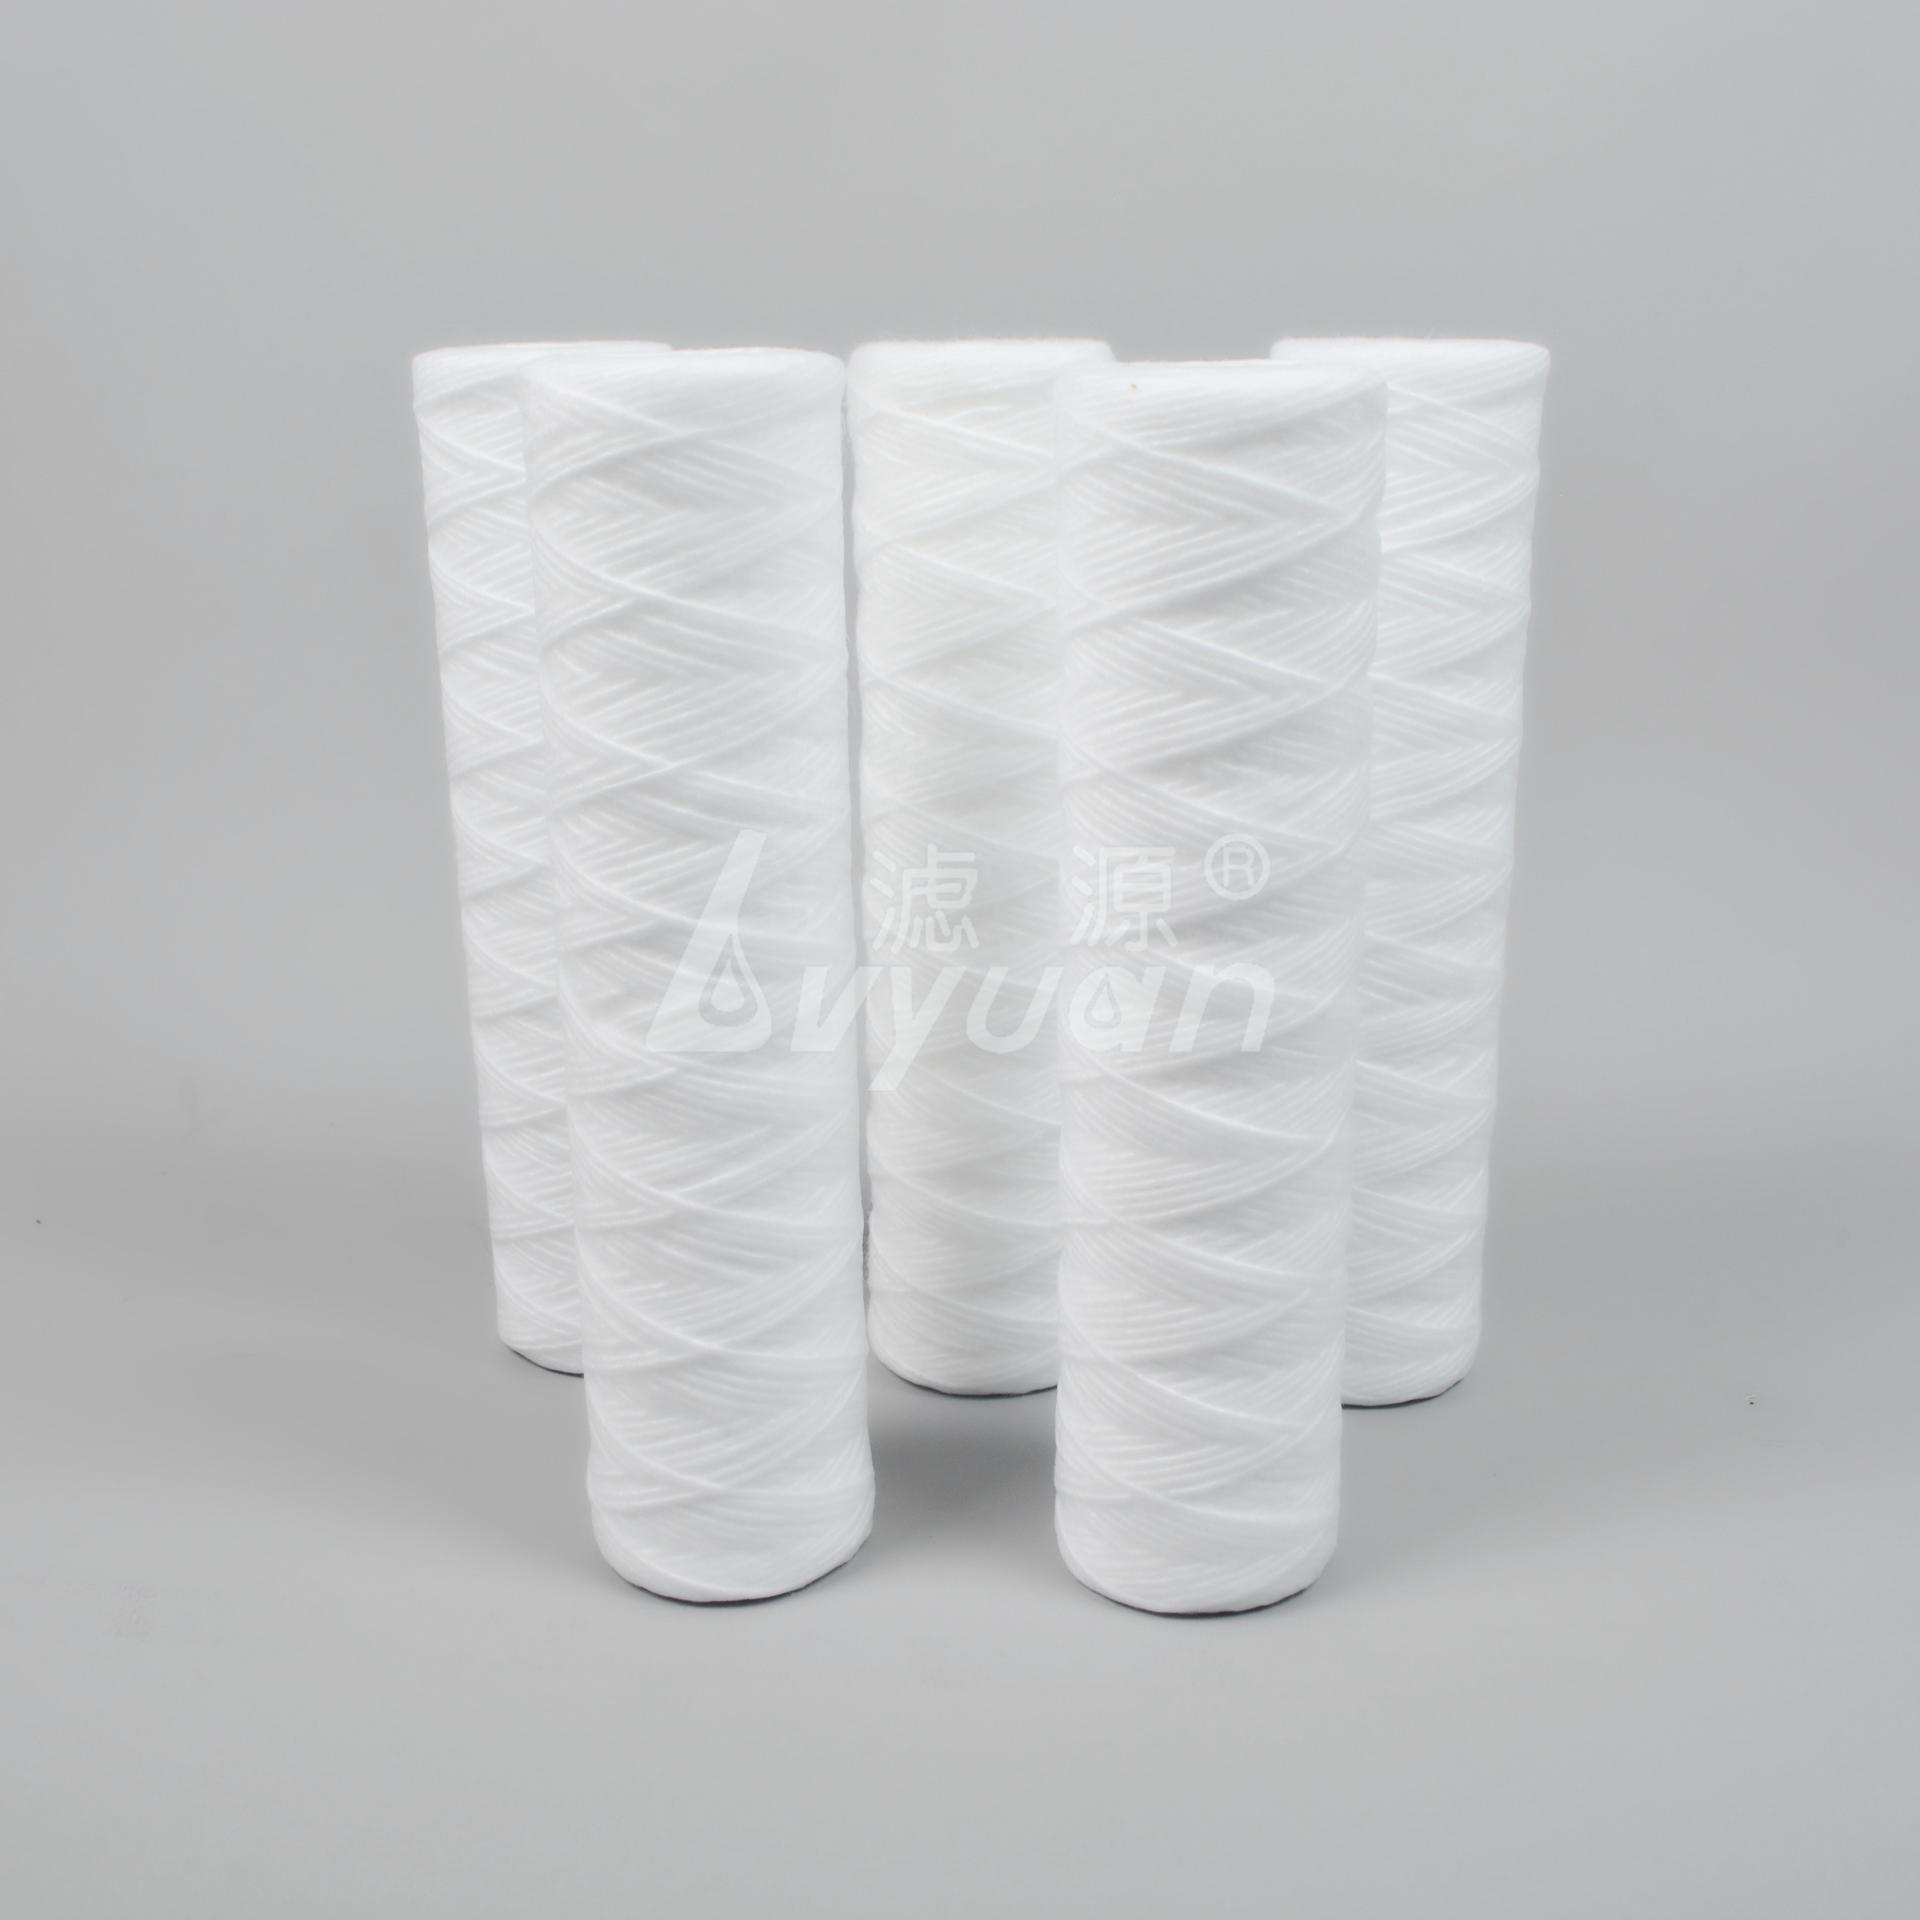 string wound filter cartridge/ pp sediment filter cartridge for water purifier 10 inch 50pcs/box DOE with pp core